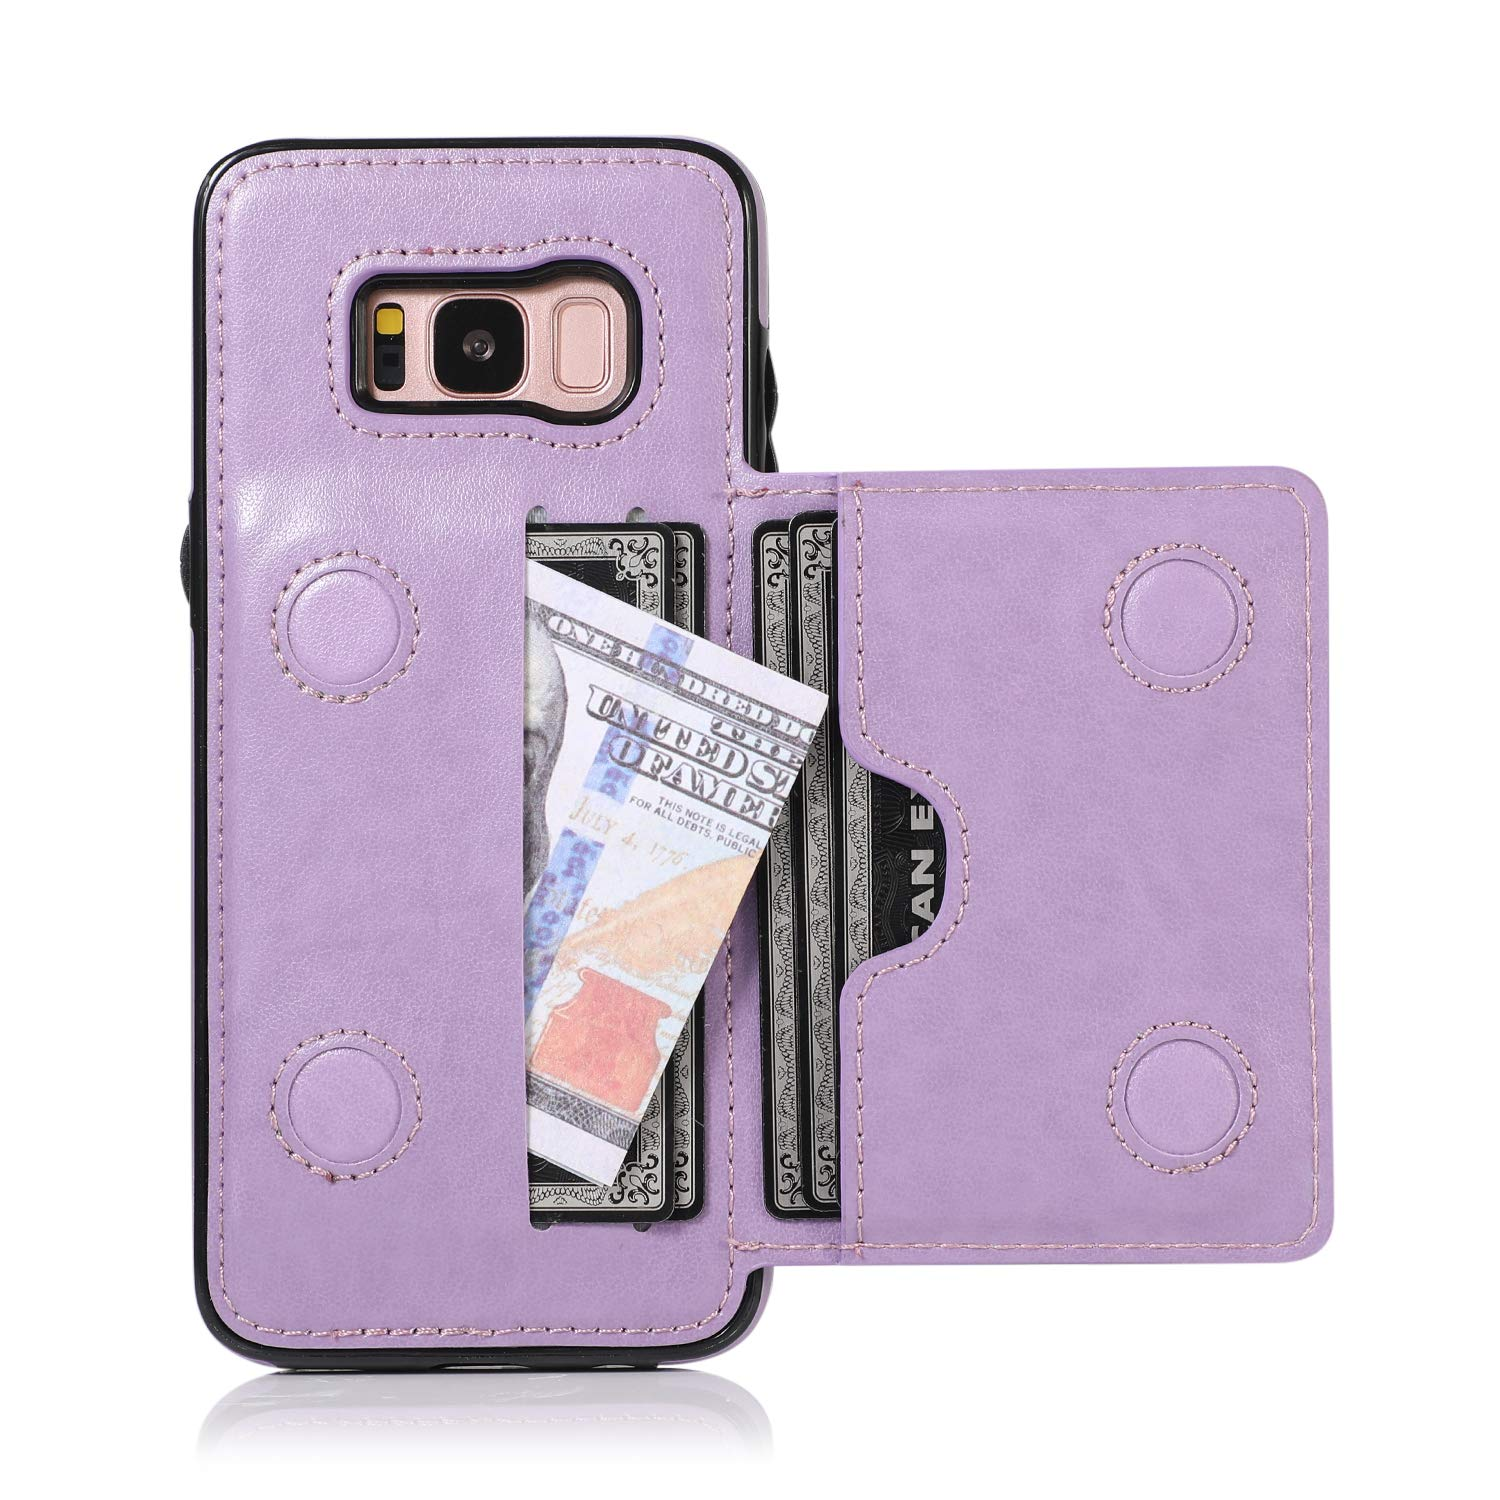 Galaxy S8 Case, Ranyi Slim Flip Wallet Case with Credit Card Holder Slots Premium PU Leather Magnetic Clasp Flip Folio Wallet Protective Case Cover for Samsung Galaxy S8 5.8 Inch (2017), Purple by Ranyi